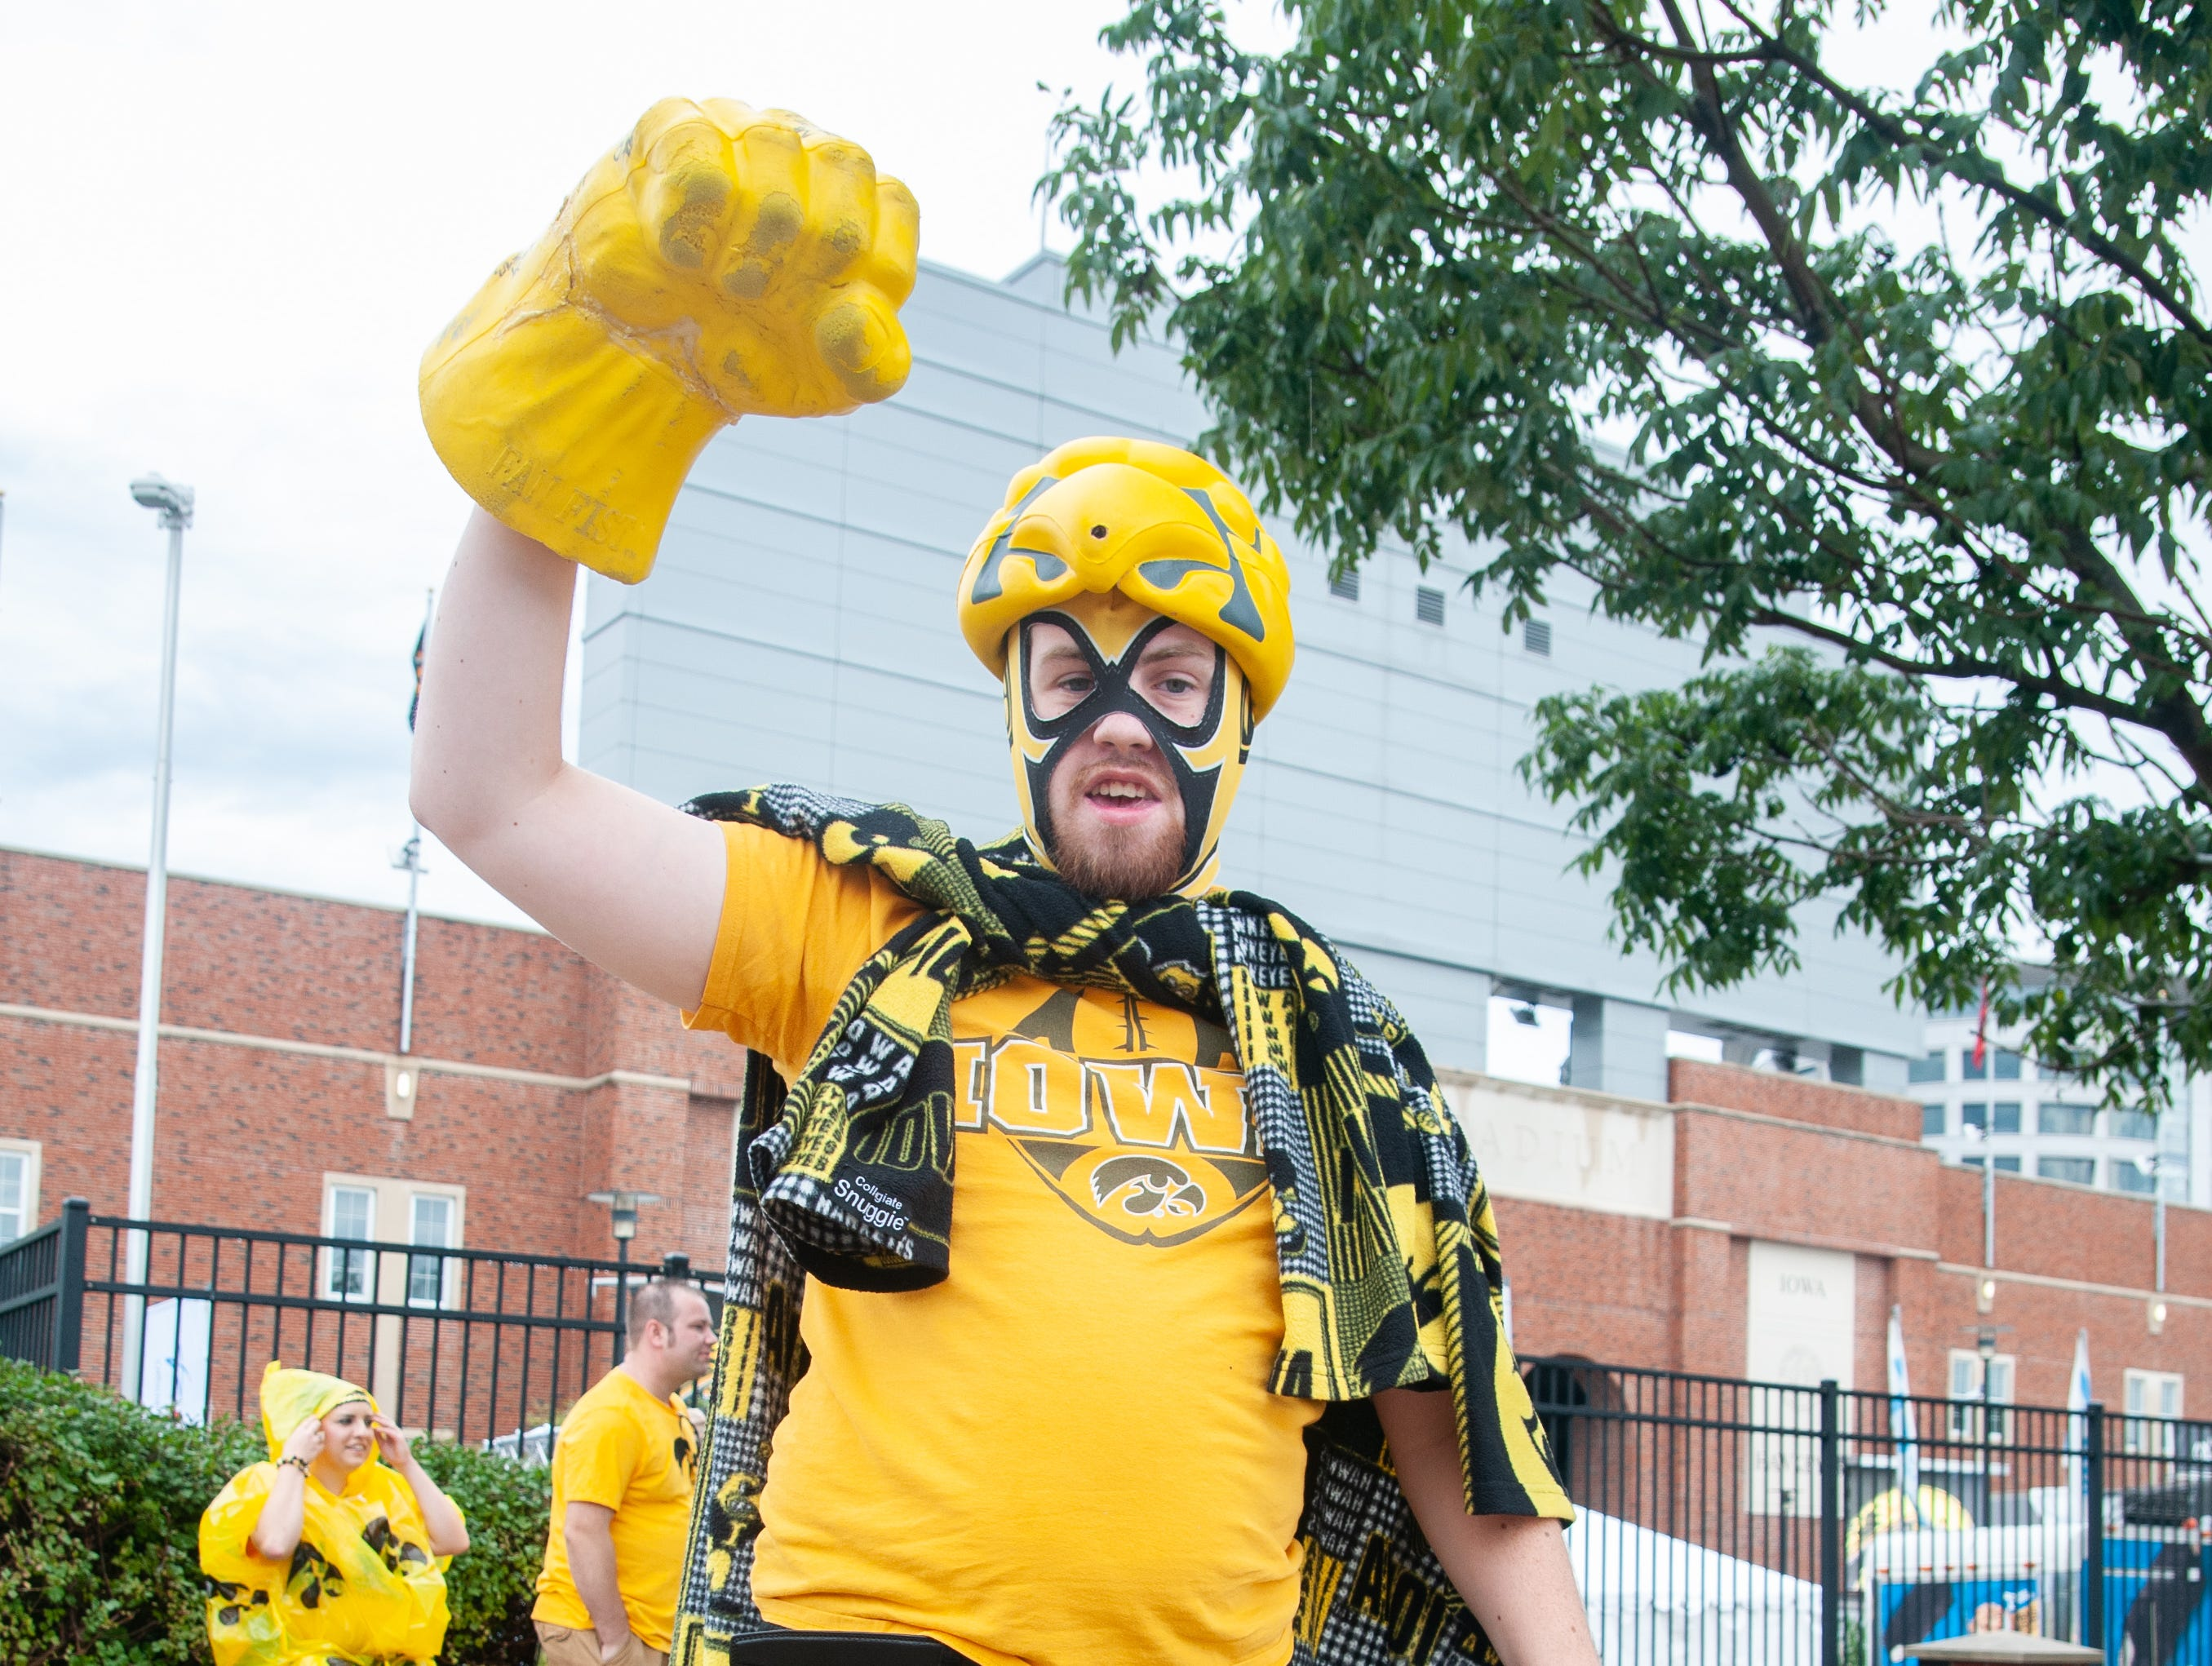 """Hawkeye Libre"" Owen Steinbrech, 22, of Solon, Saturday, Sept. 1, 2018, while tailgating before the Iowa game against Northern Illinois in Iowa City."